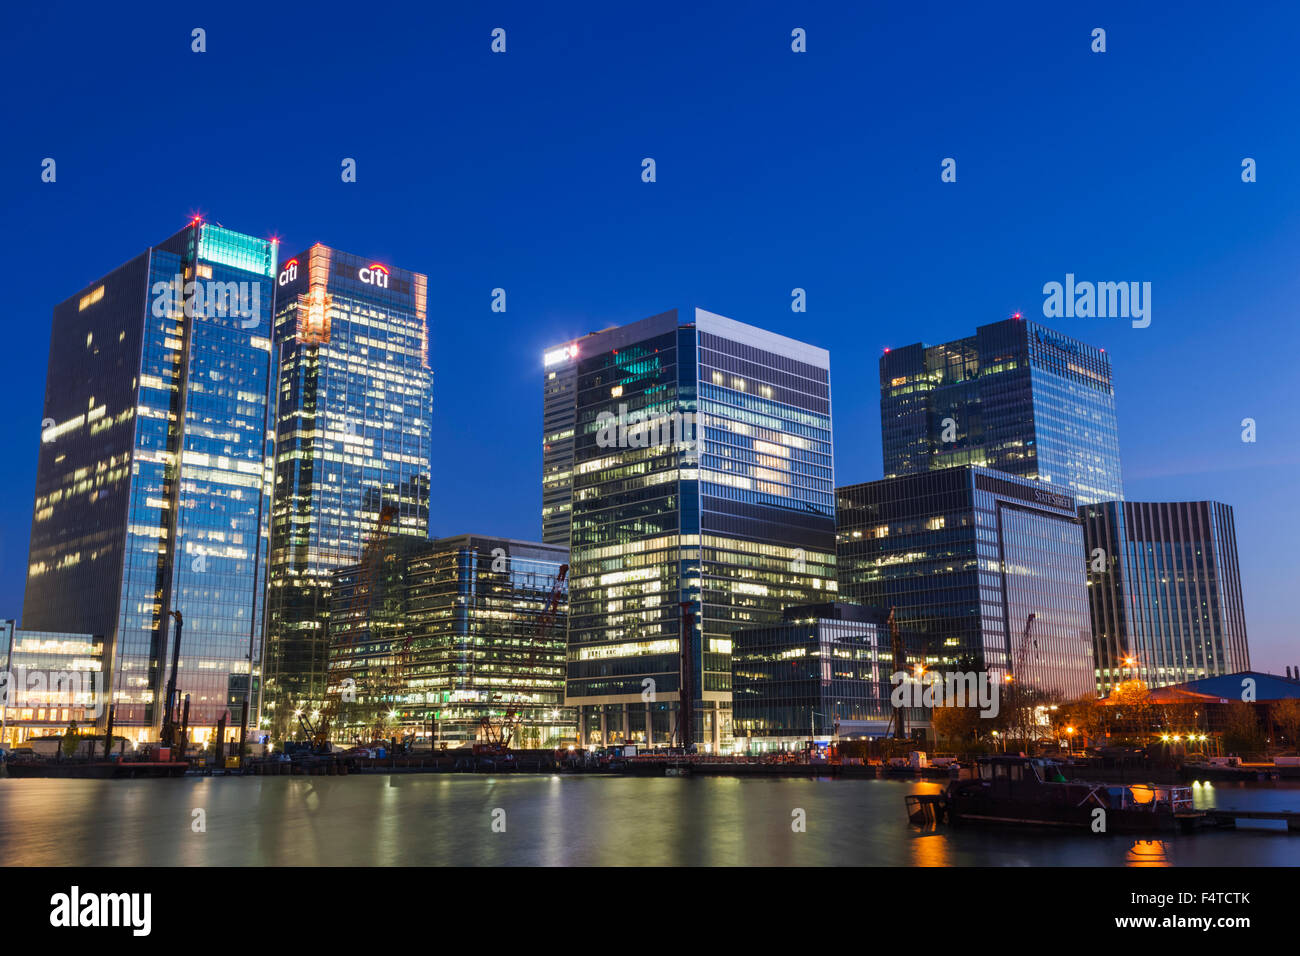 England, London, Docklands, Canary Wharf Stock Photo